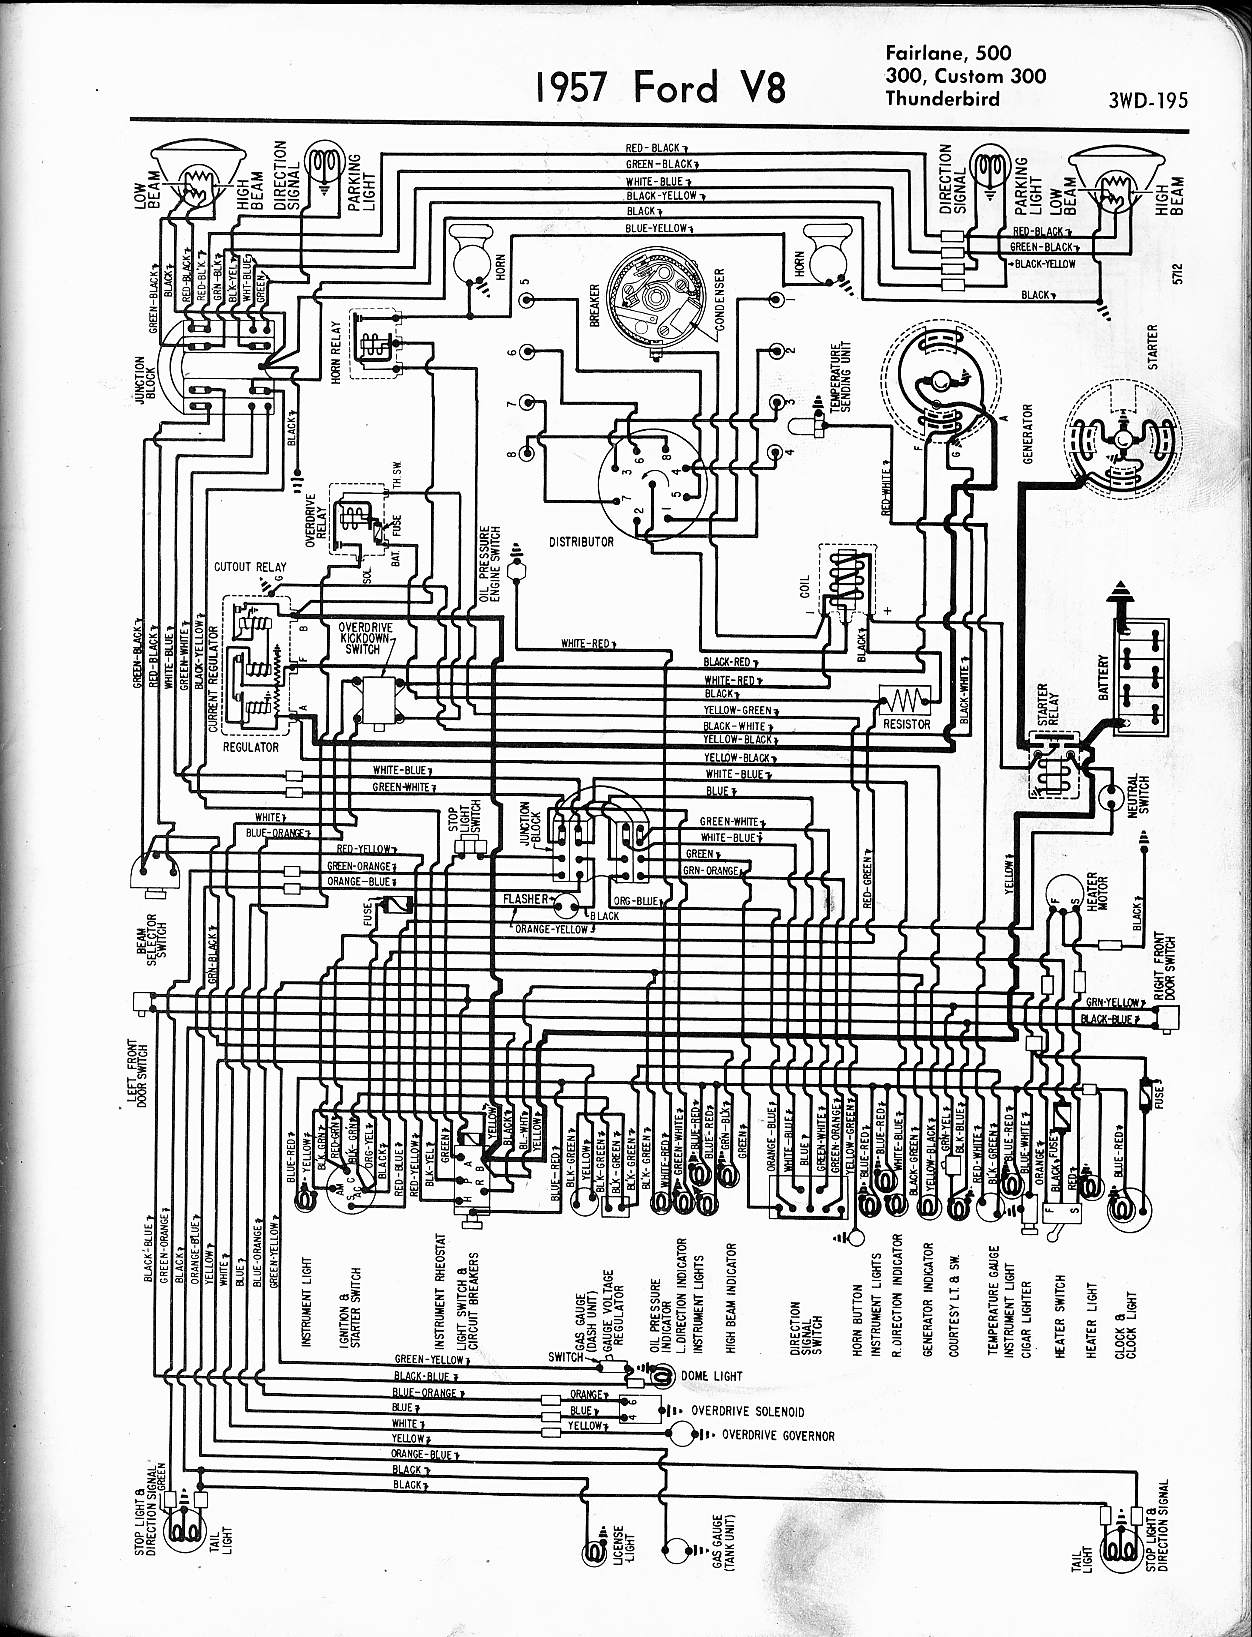 Thunderbird Wiring Diagram on 1957 Ford Fairlane Wiring Diagram